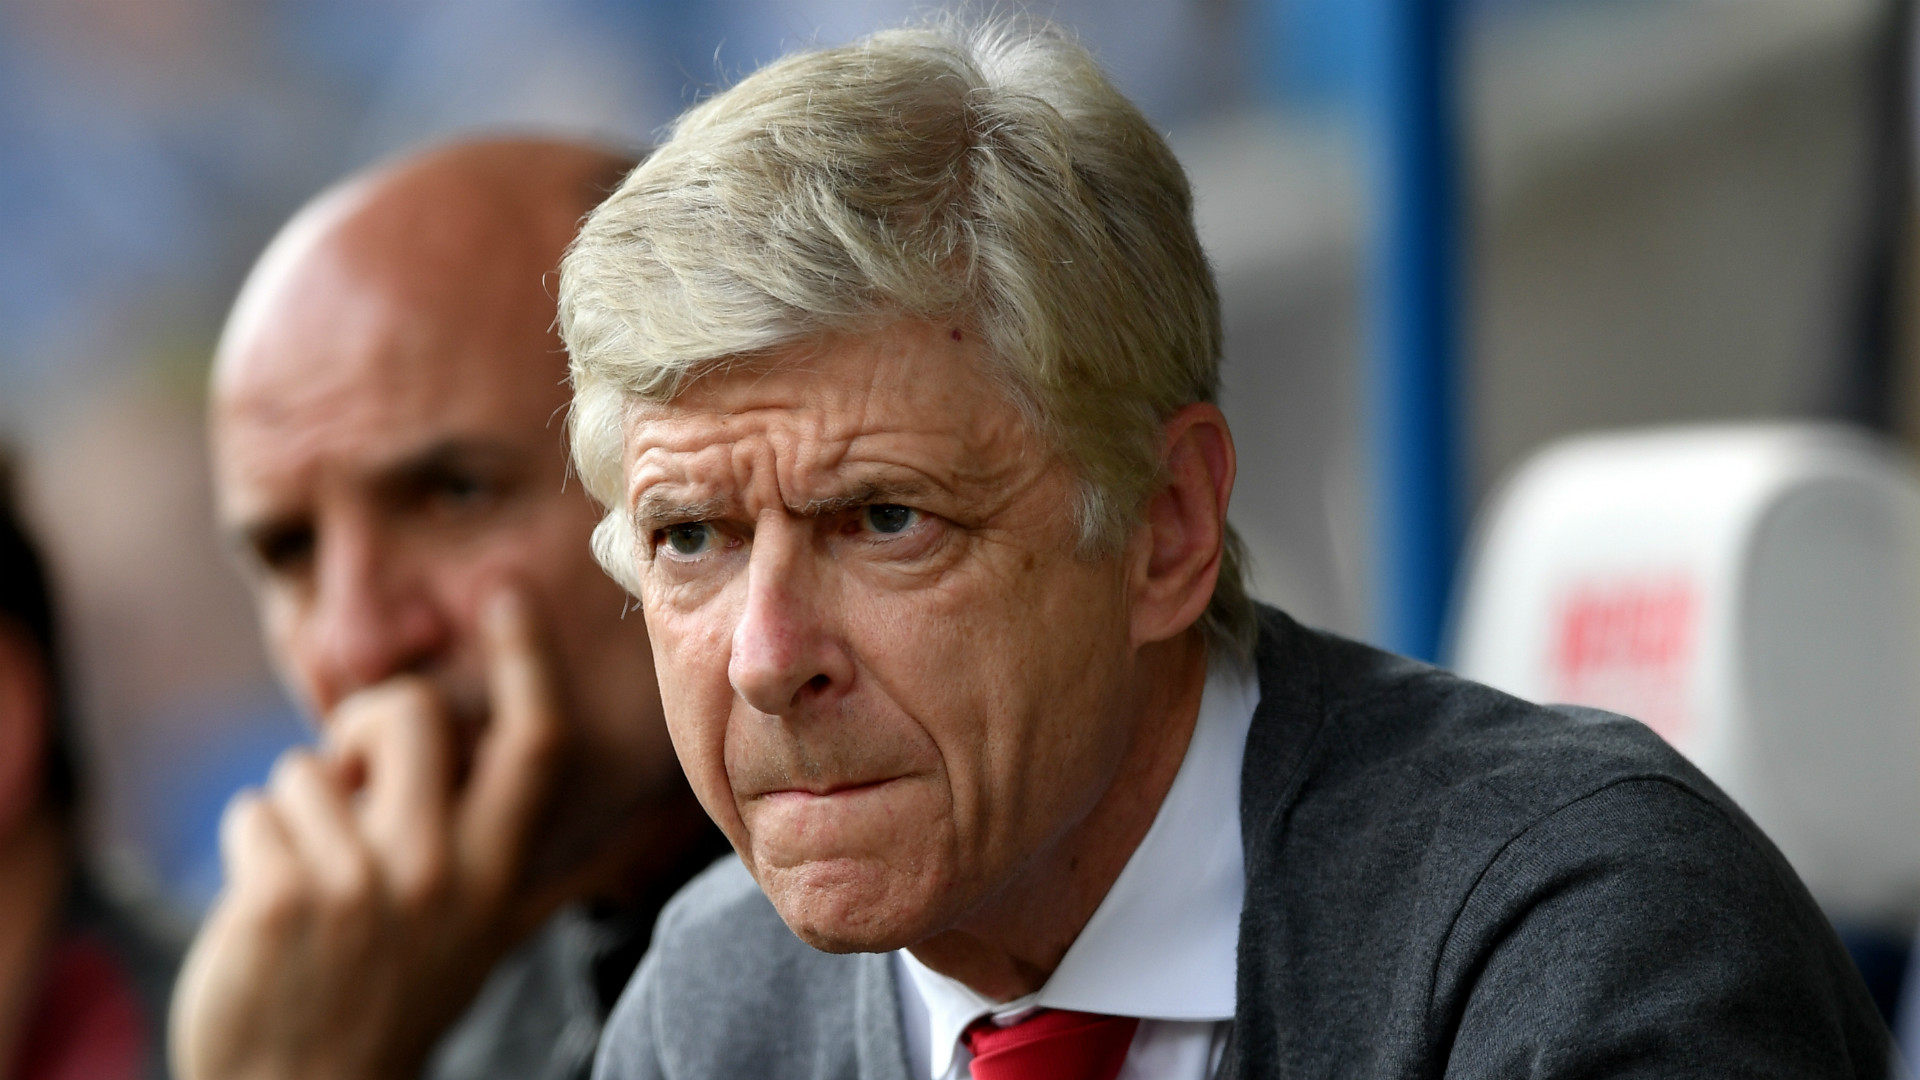 Wenger turned down Real Madrid &England 'two or three times'